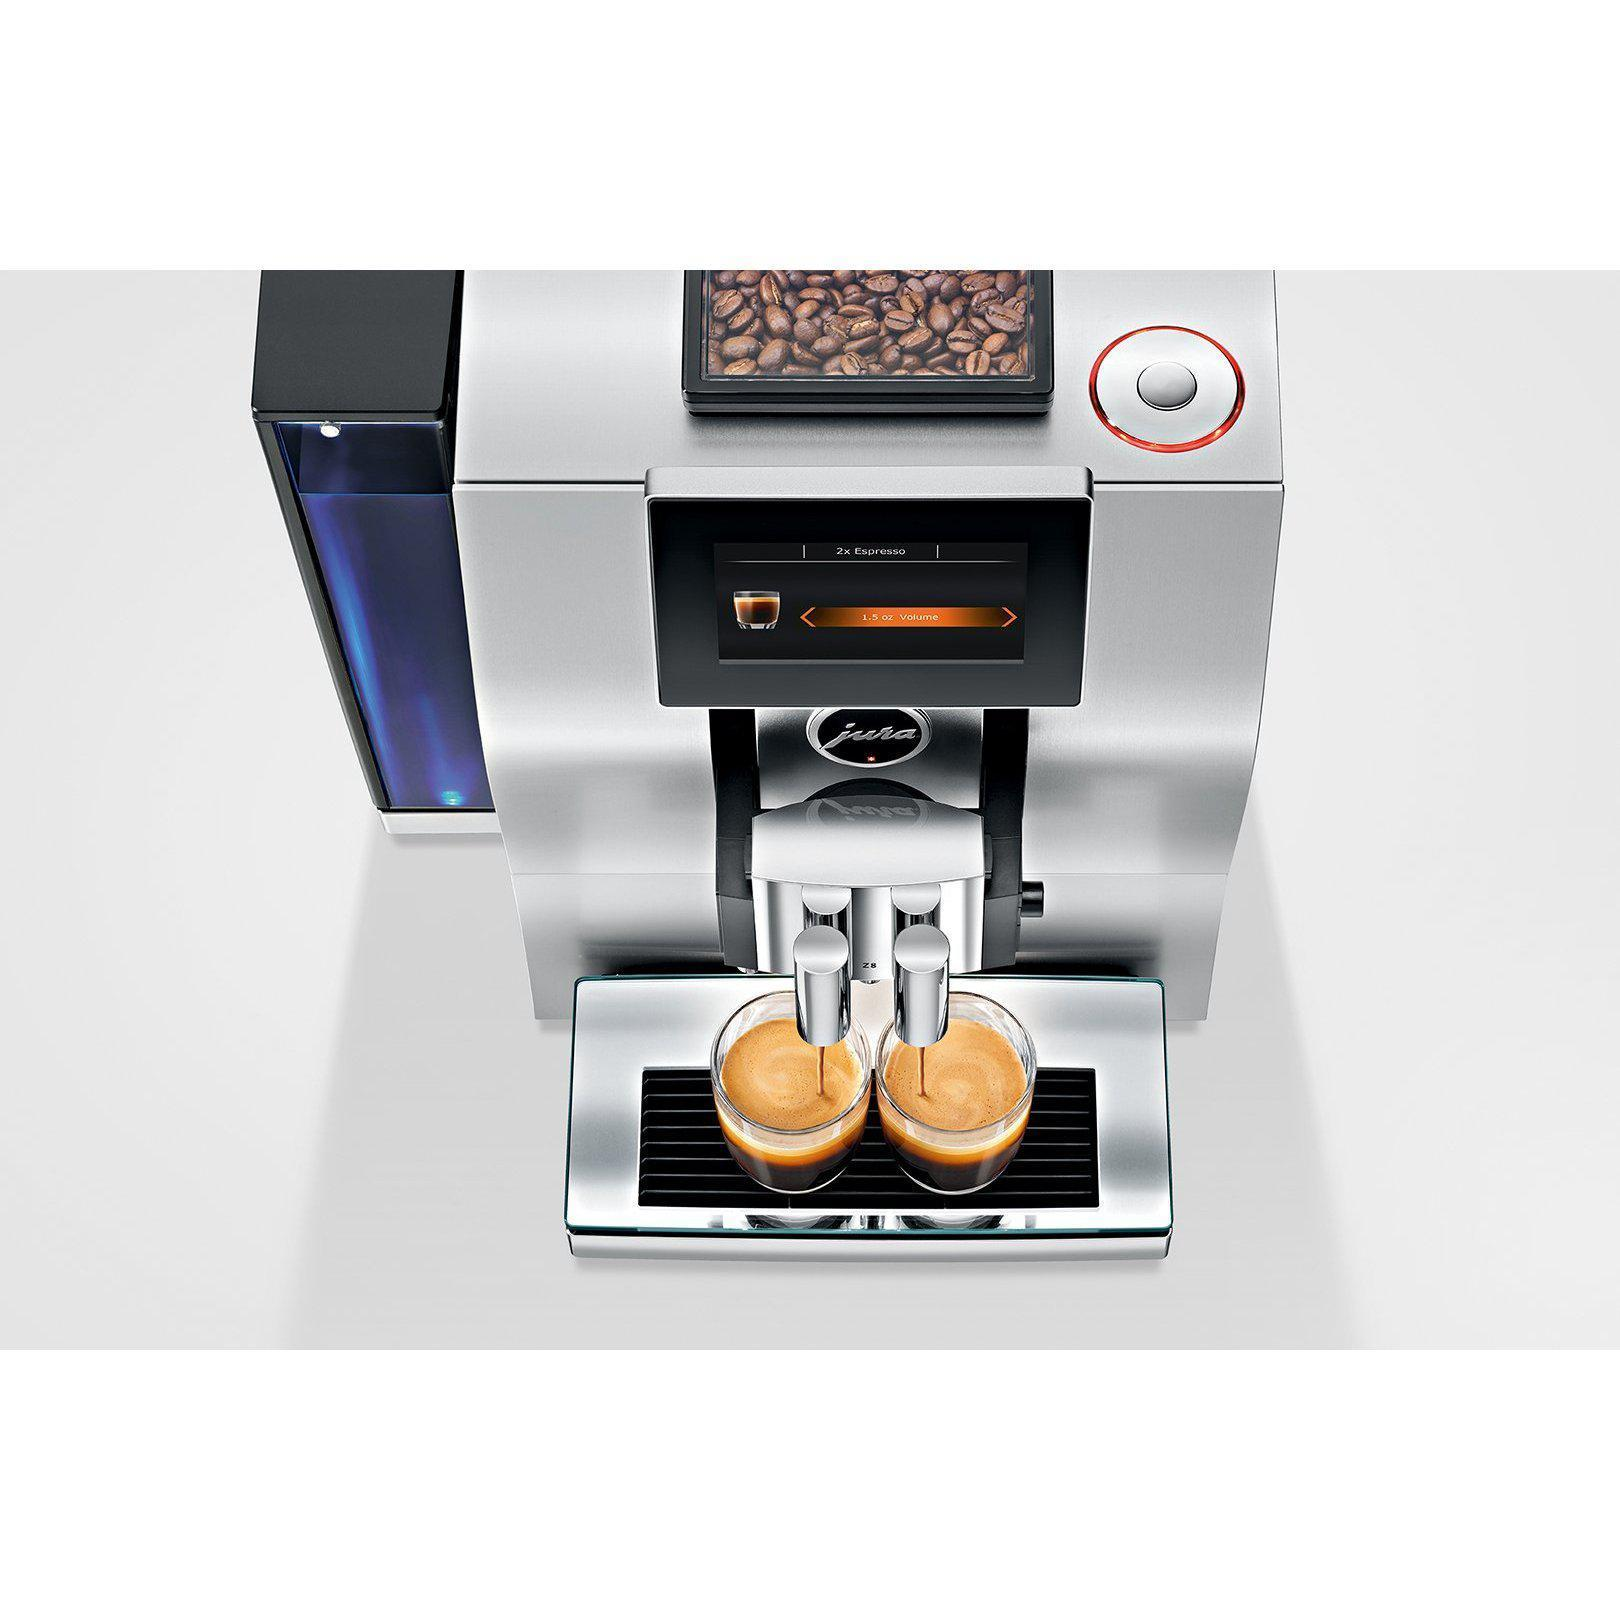 Jura Z8 Super Automatic Espresso Machine Top View